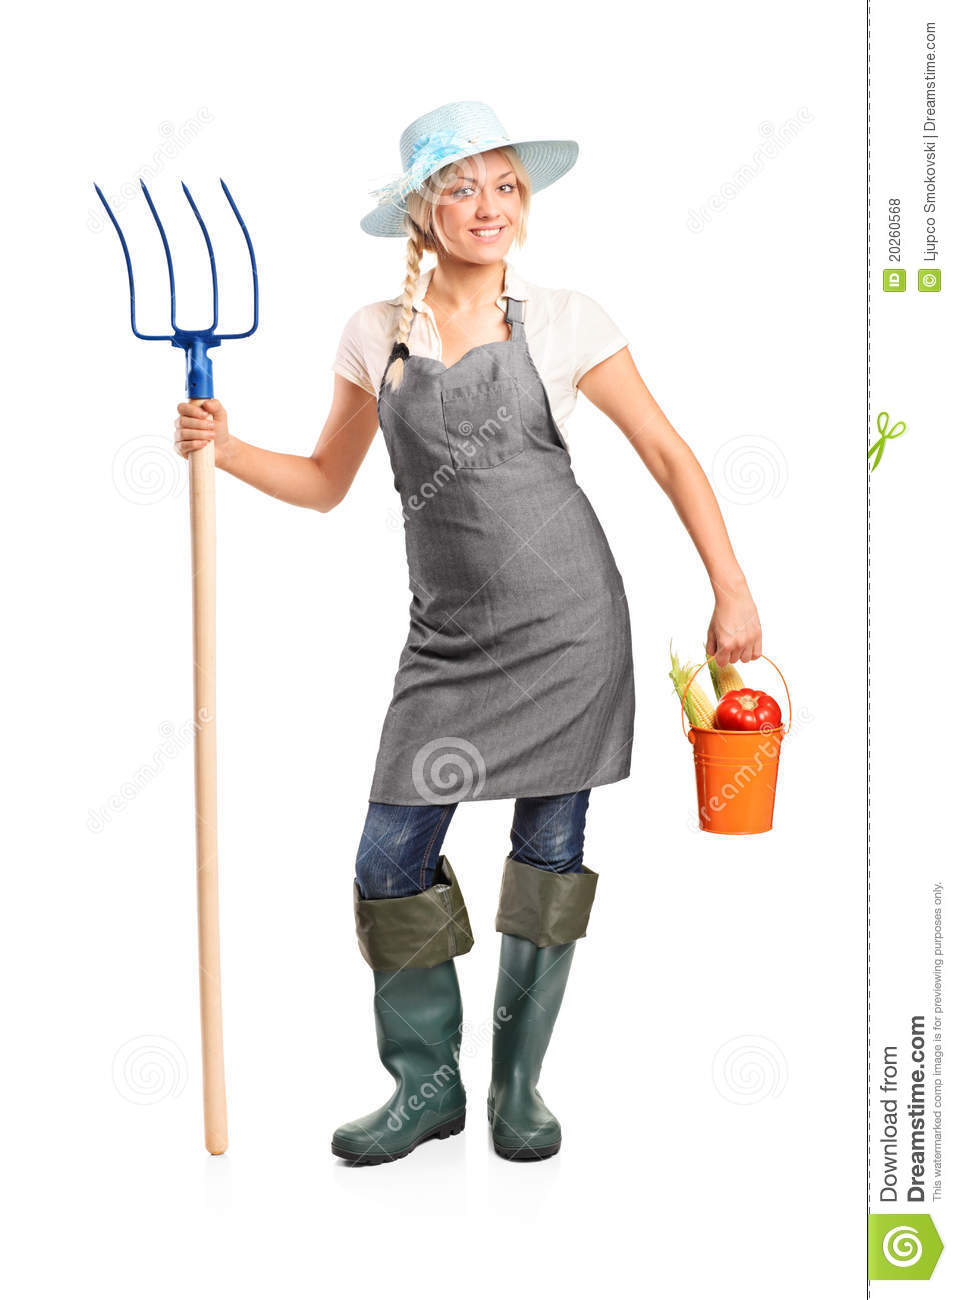 Female farmer holding a pitchfork and bucket